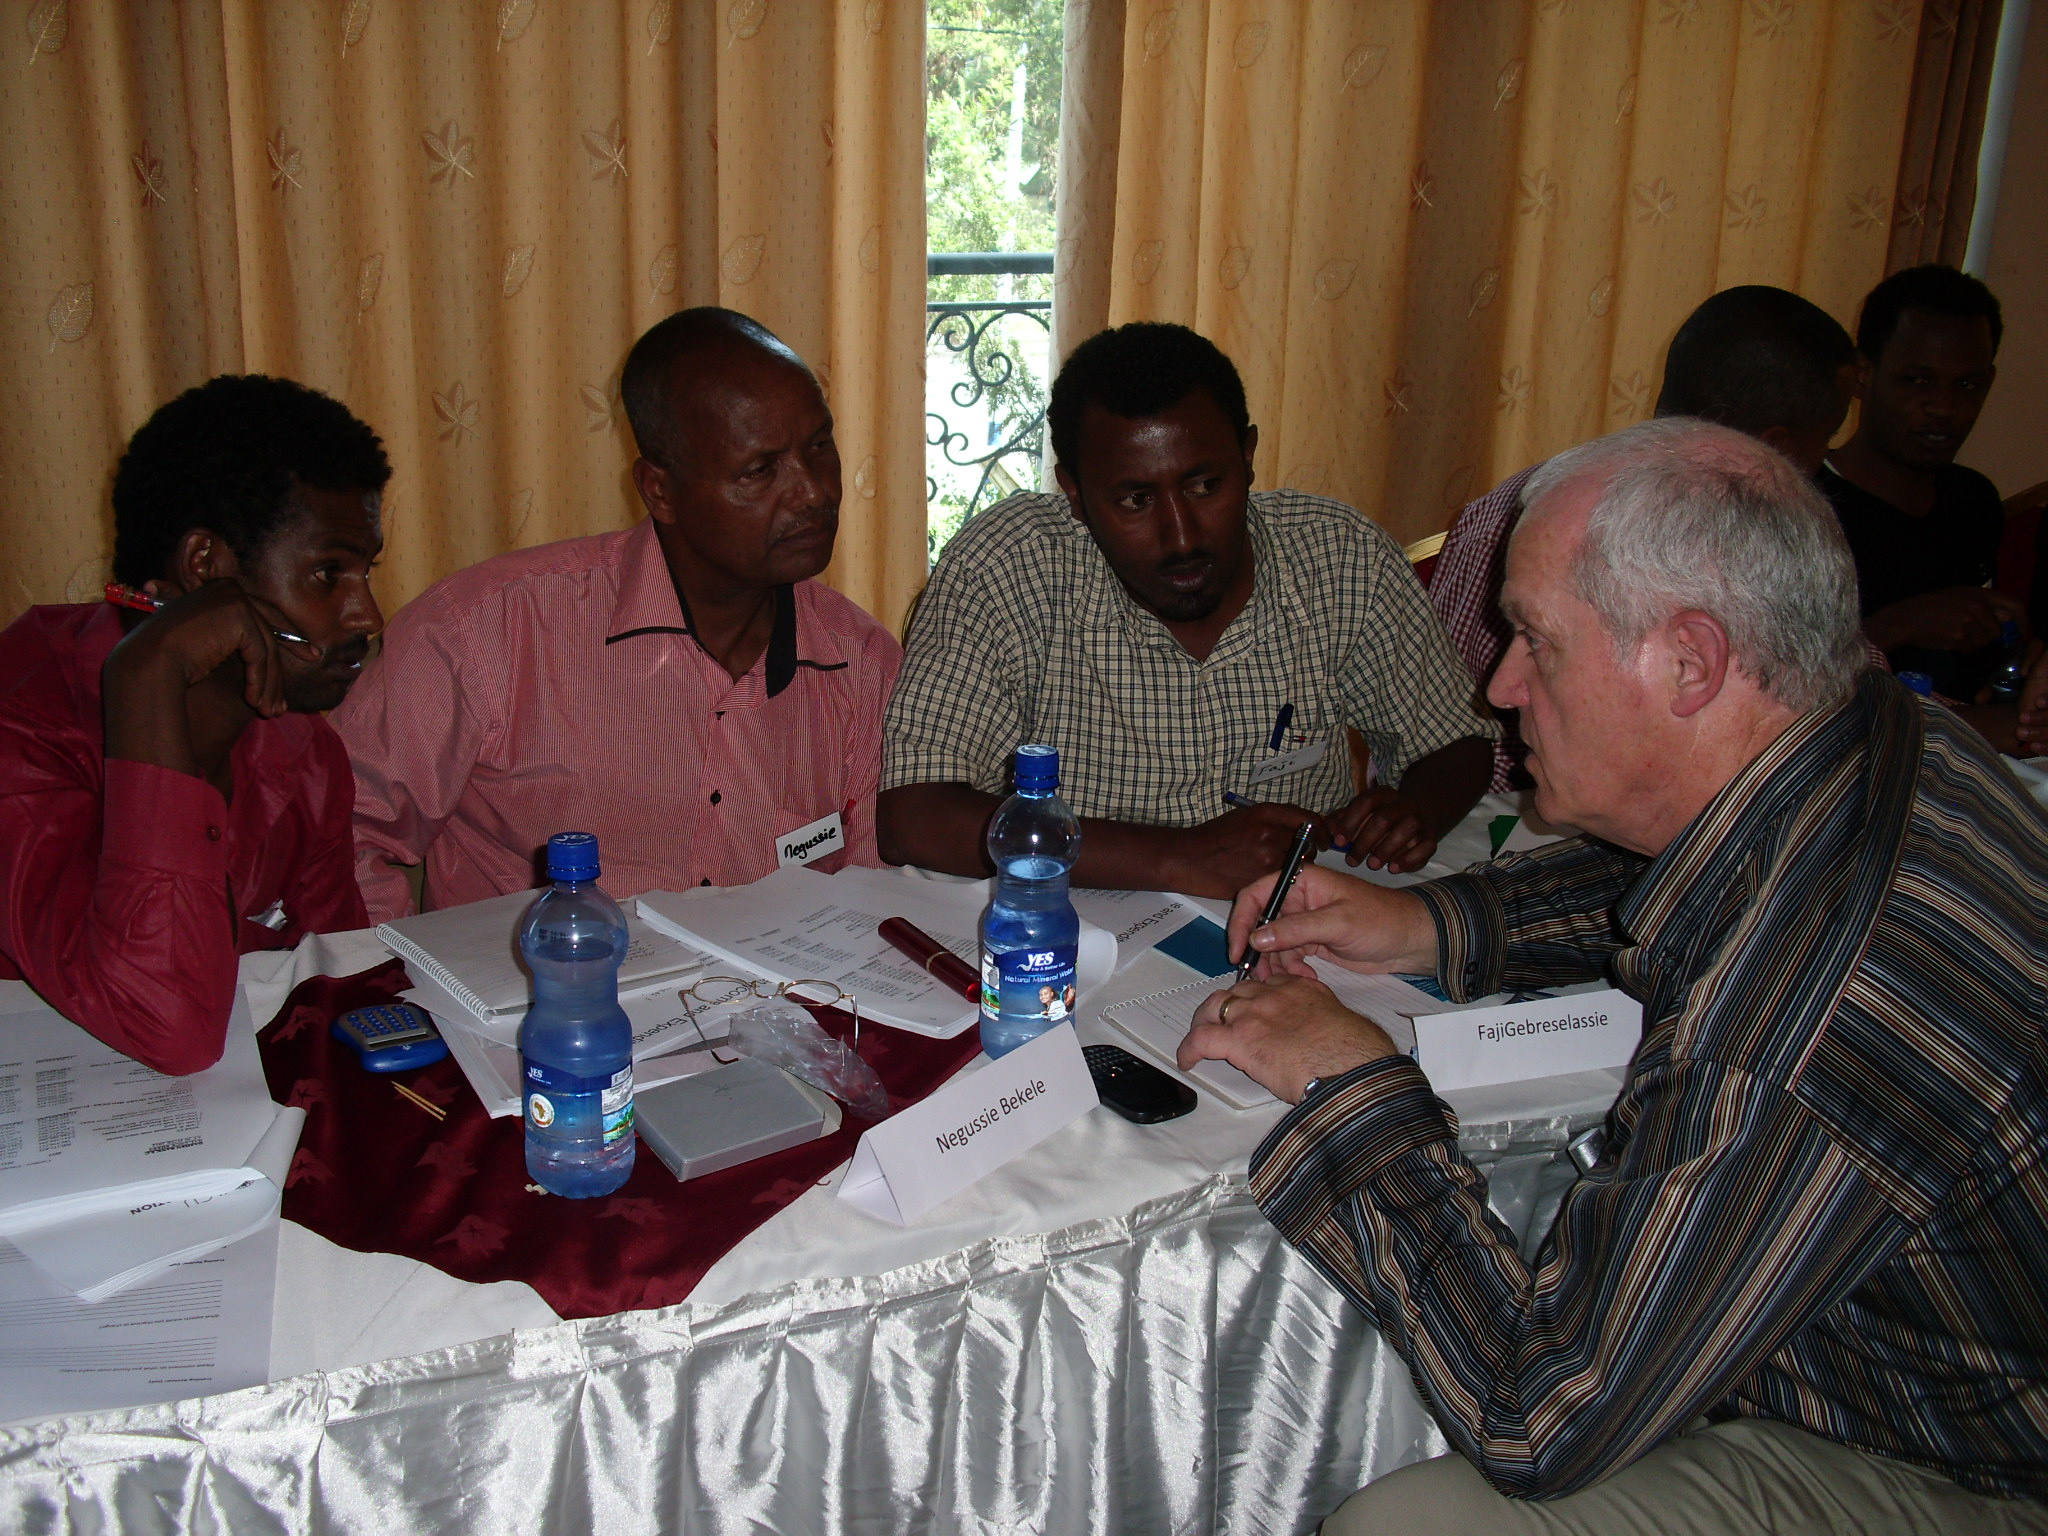 Ted O'Sullivan, discussing risk management and pearl ratios at a training day in Ethiopia